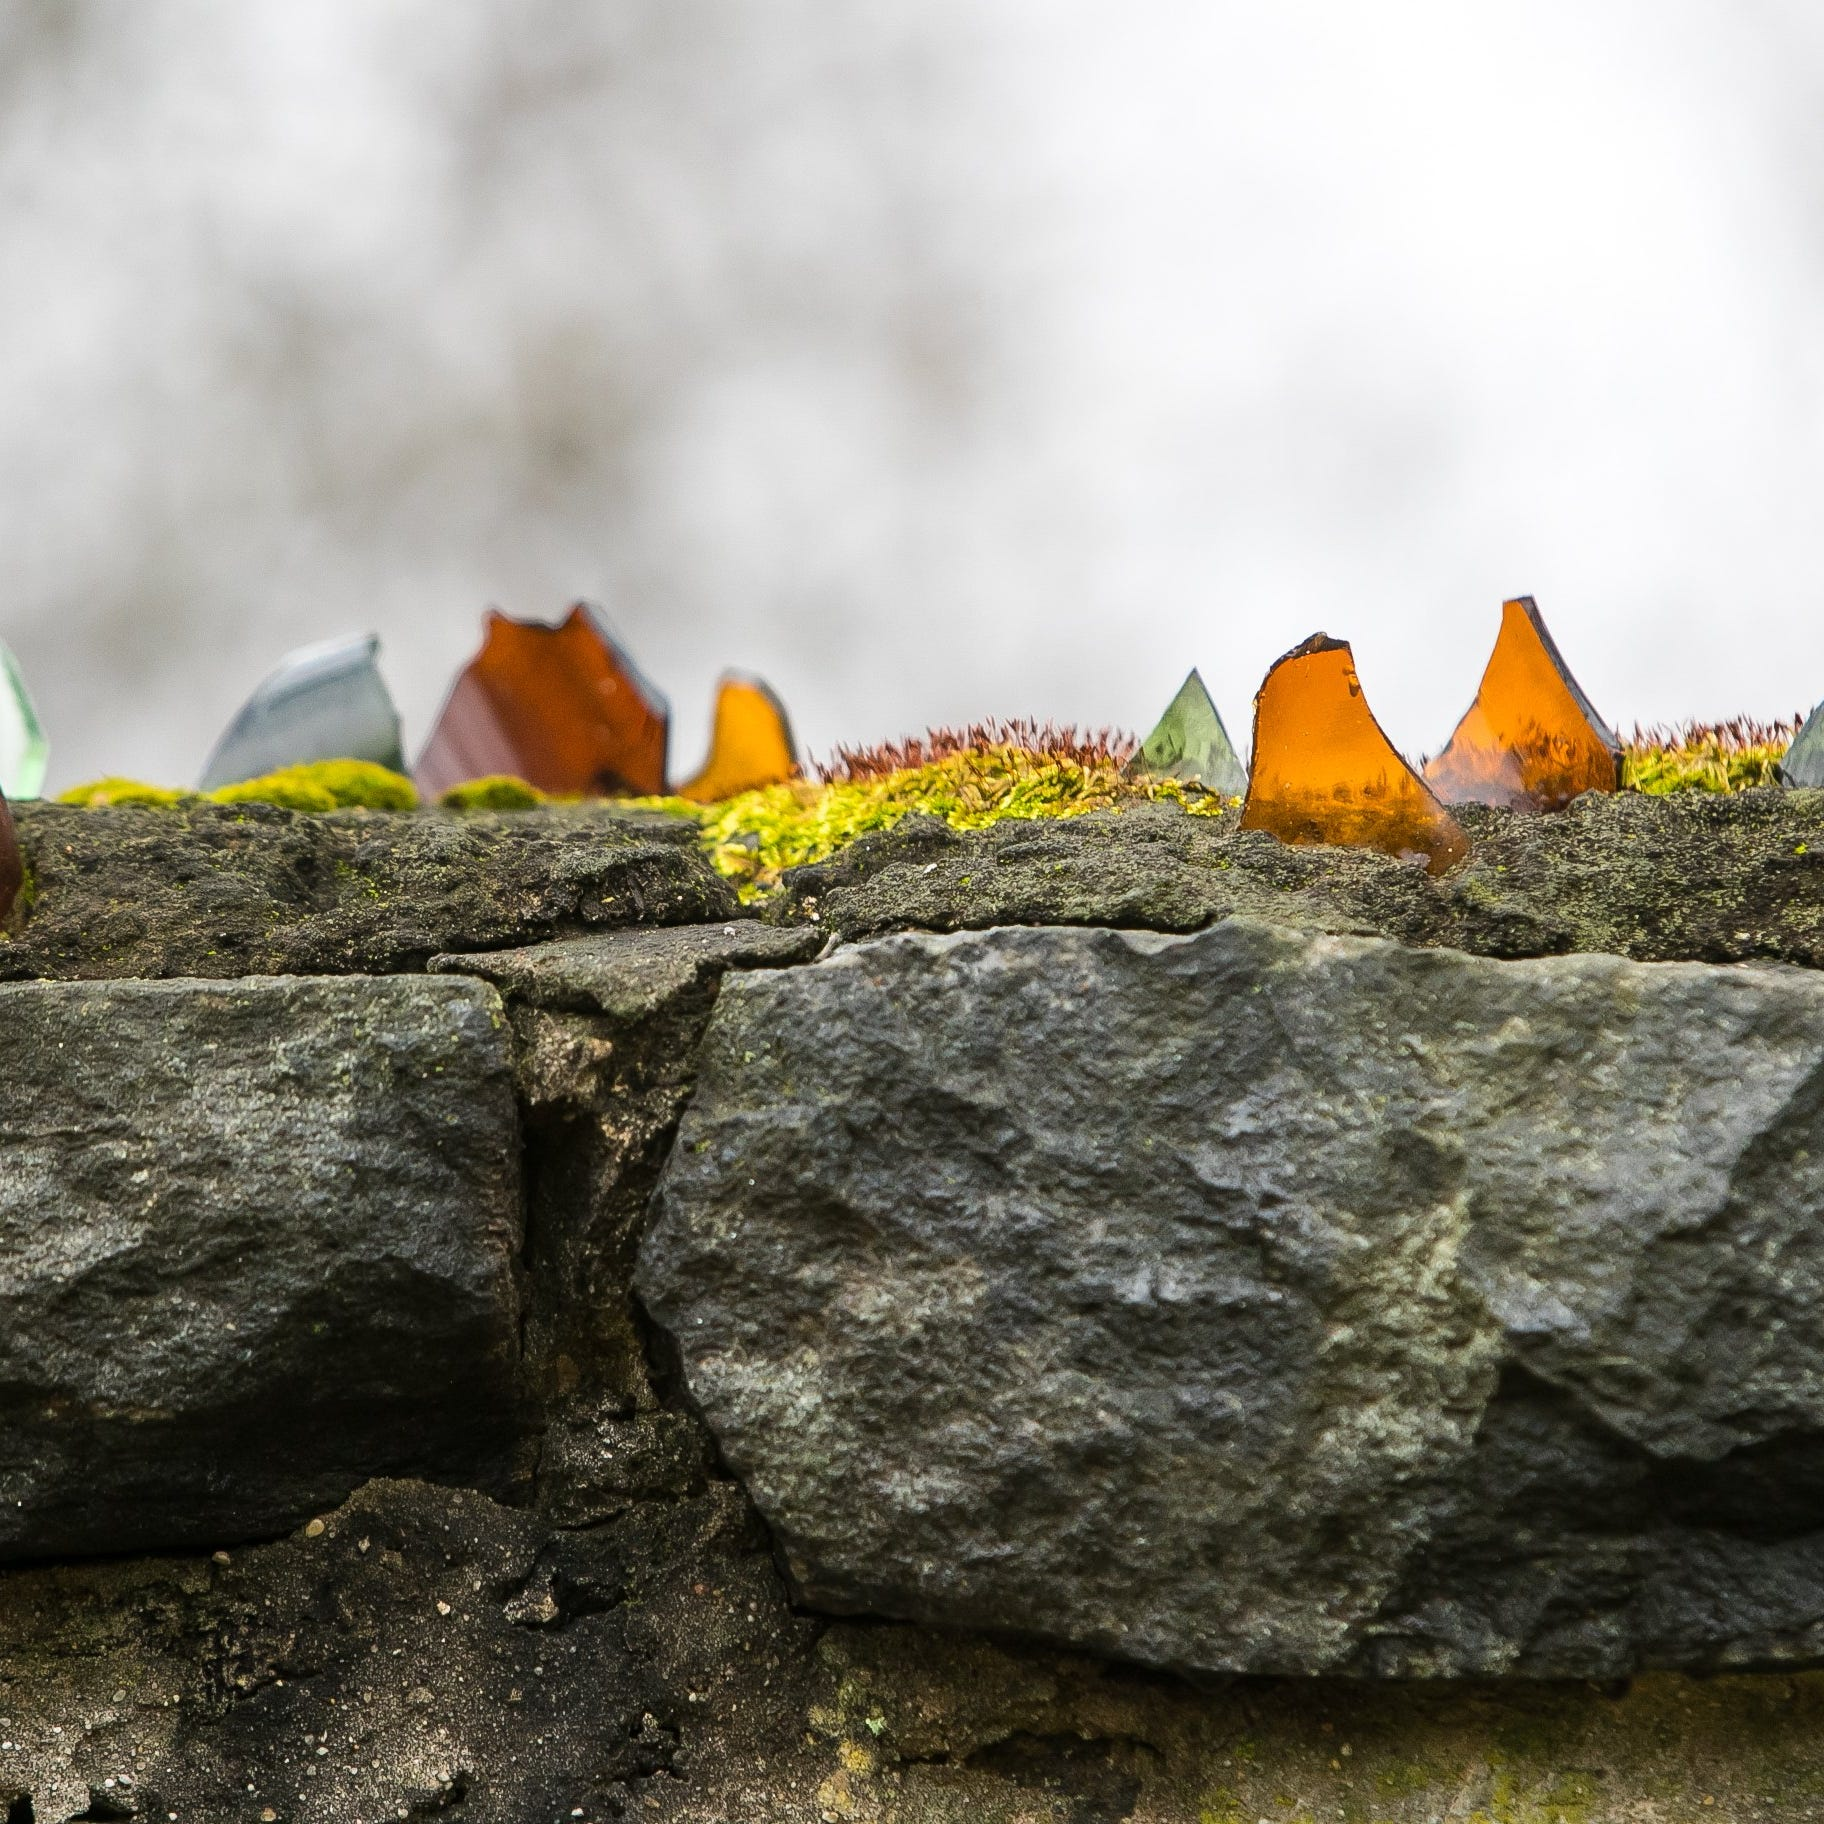 Why does a duPont mansion have a stone wall topped with jagged glass shards?